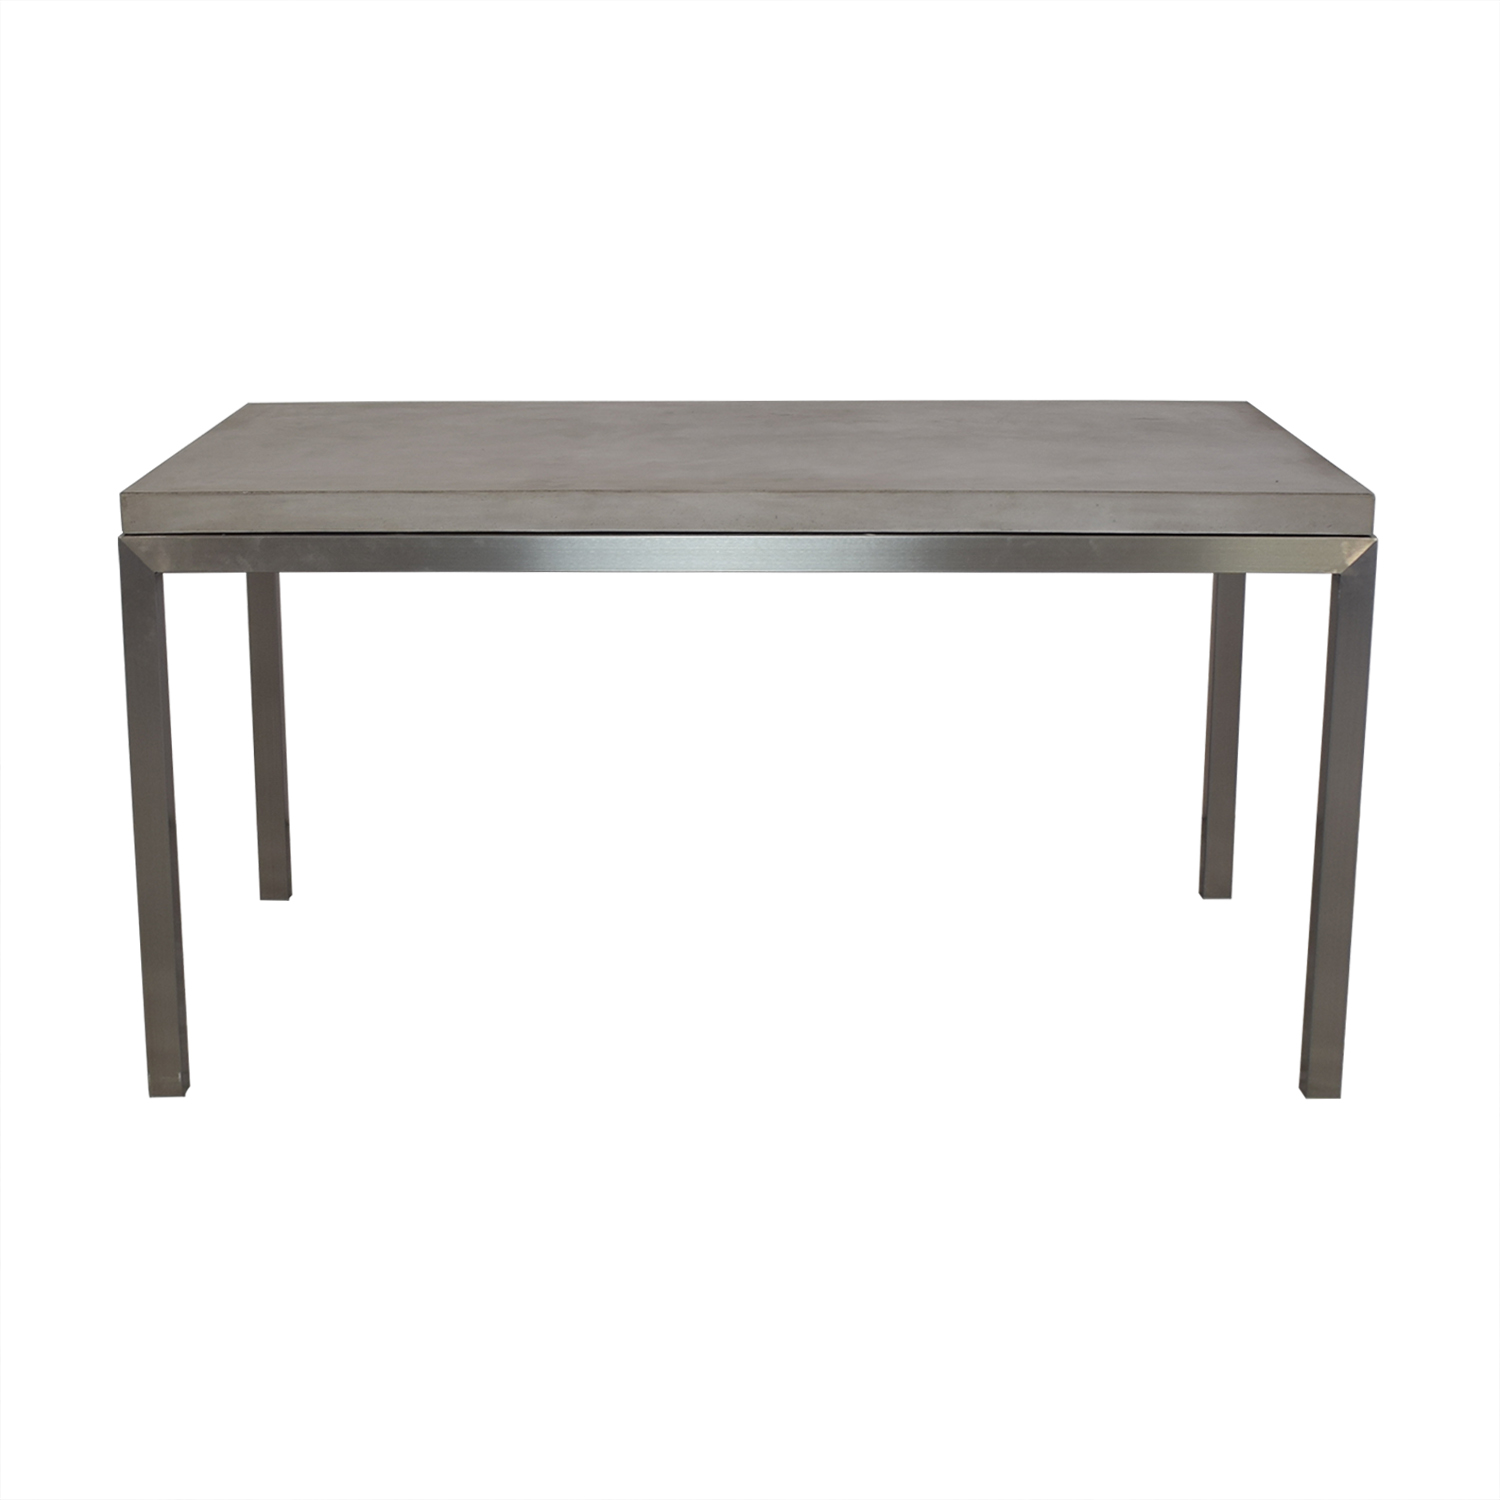 Crate & Barrel Crate & Barrel Dining Table used